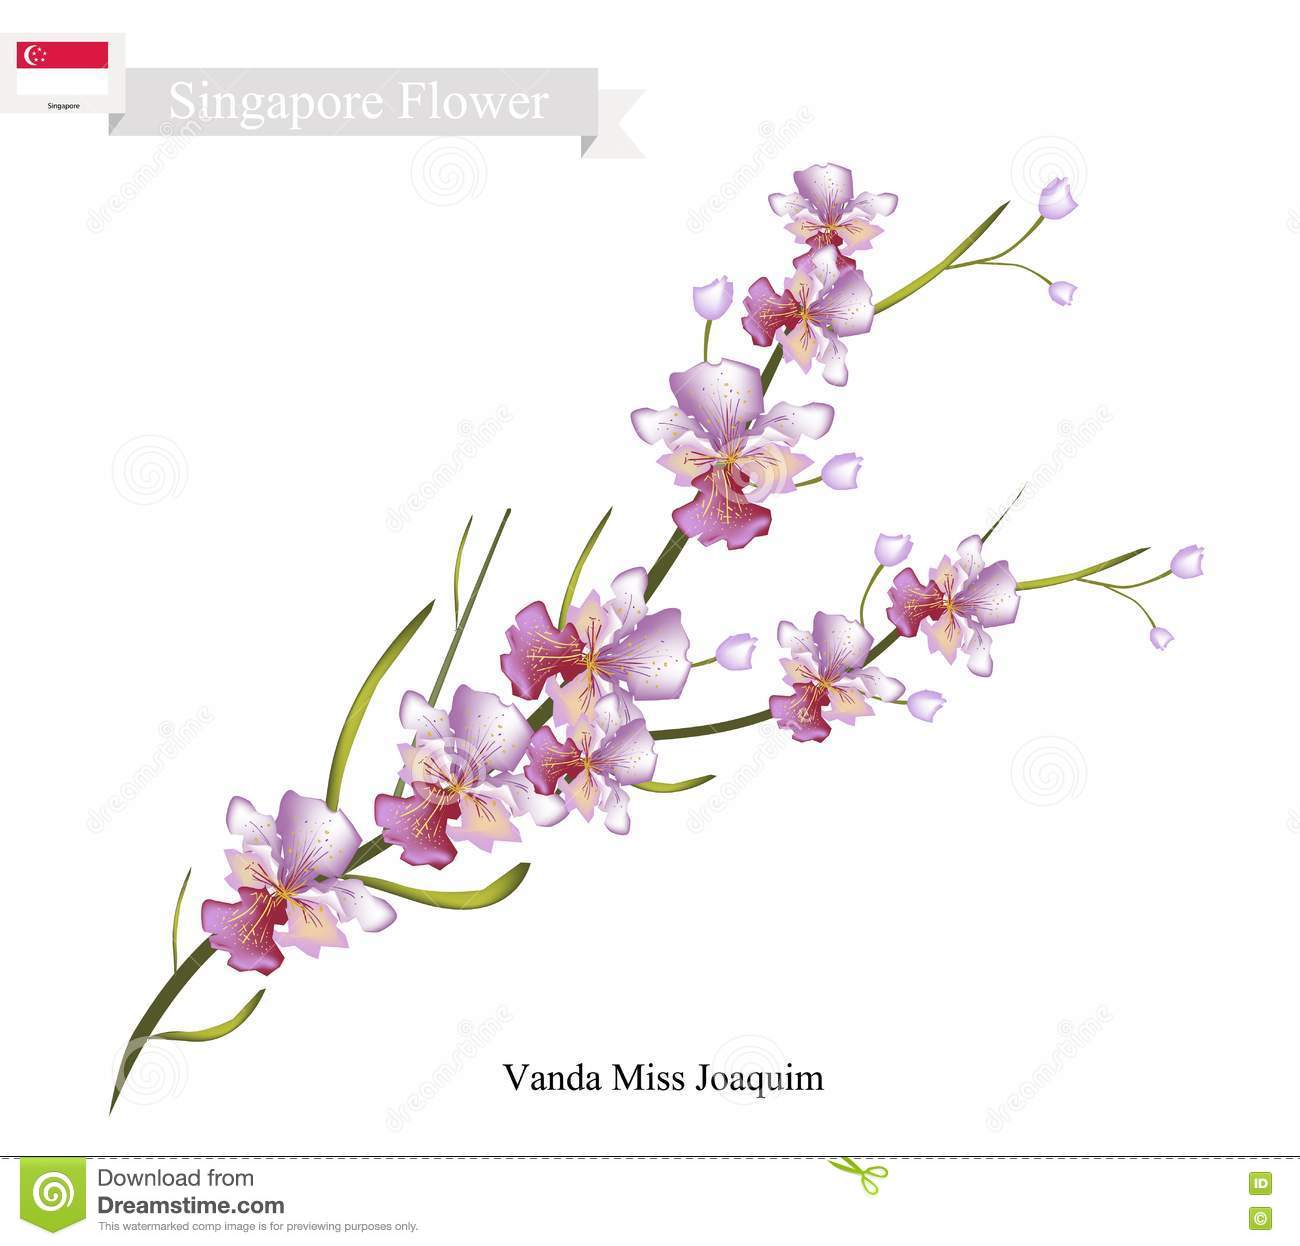 National flower of singapore vanda miss joaquim clipart.